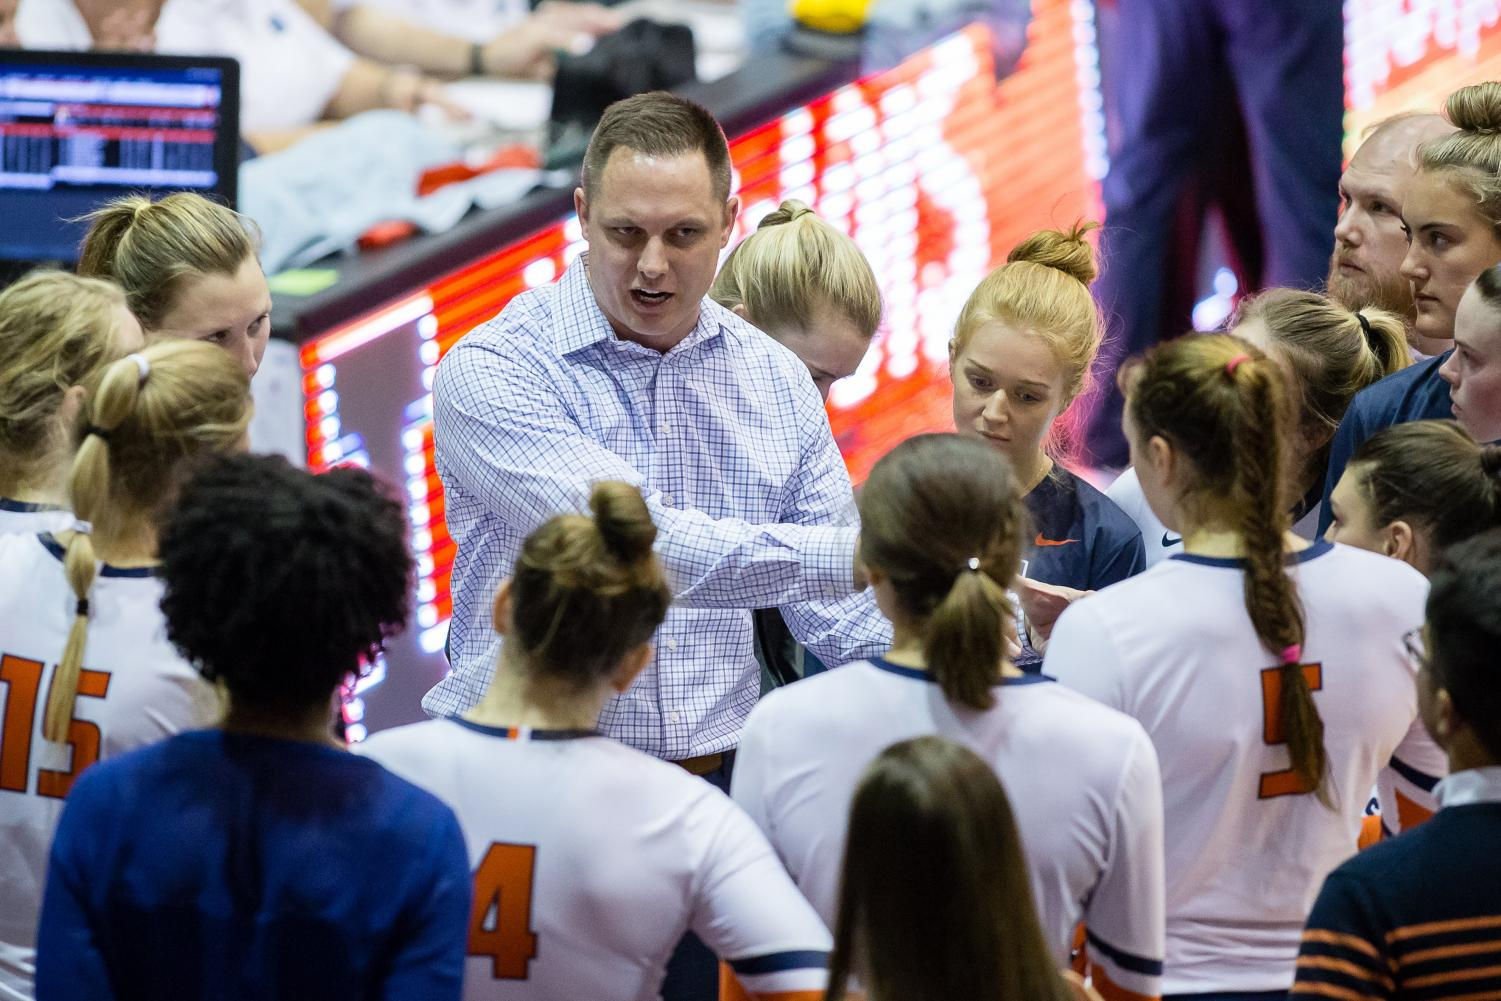 Illinois head coach Chris Tamas talks to his team during the match against Michigan at Huff Hall on Oct. 19. The Illini won 3-2. The team continues to pick up wins on the road and now heads home to compete as the No. 4-ranked team in the country.